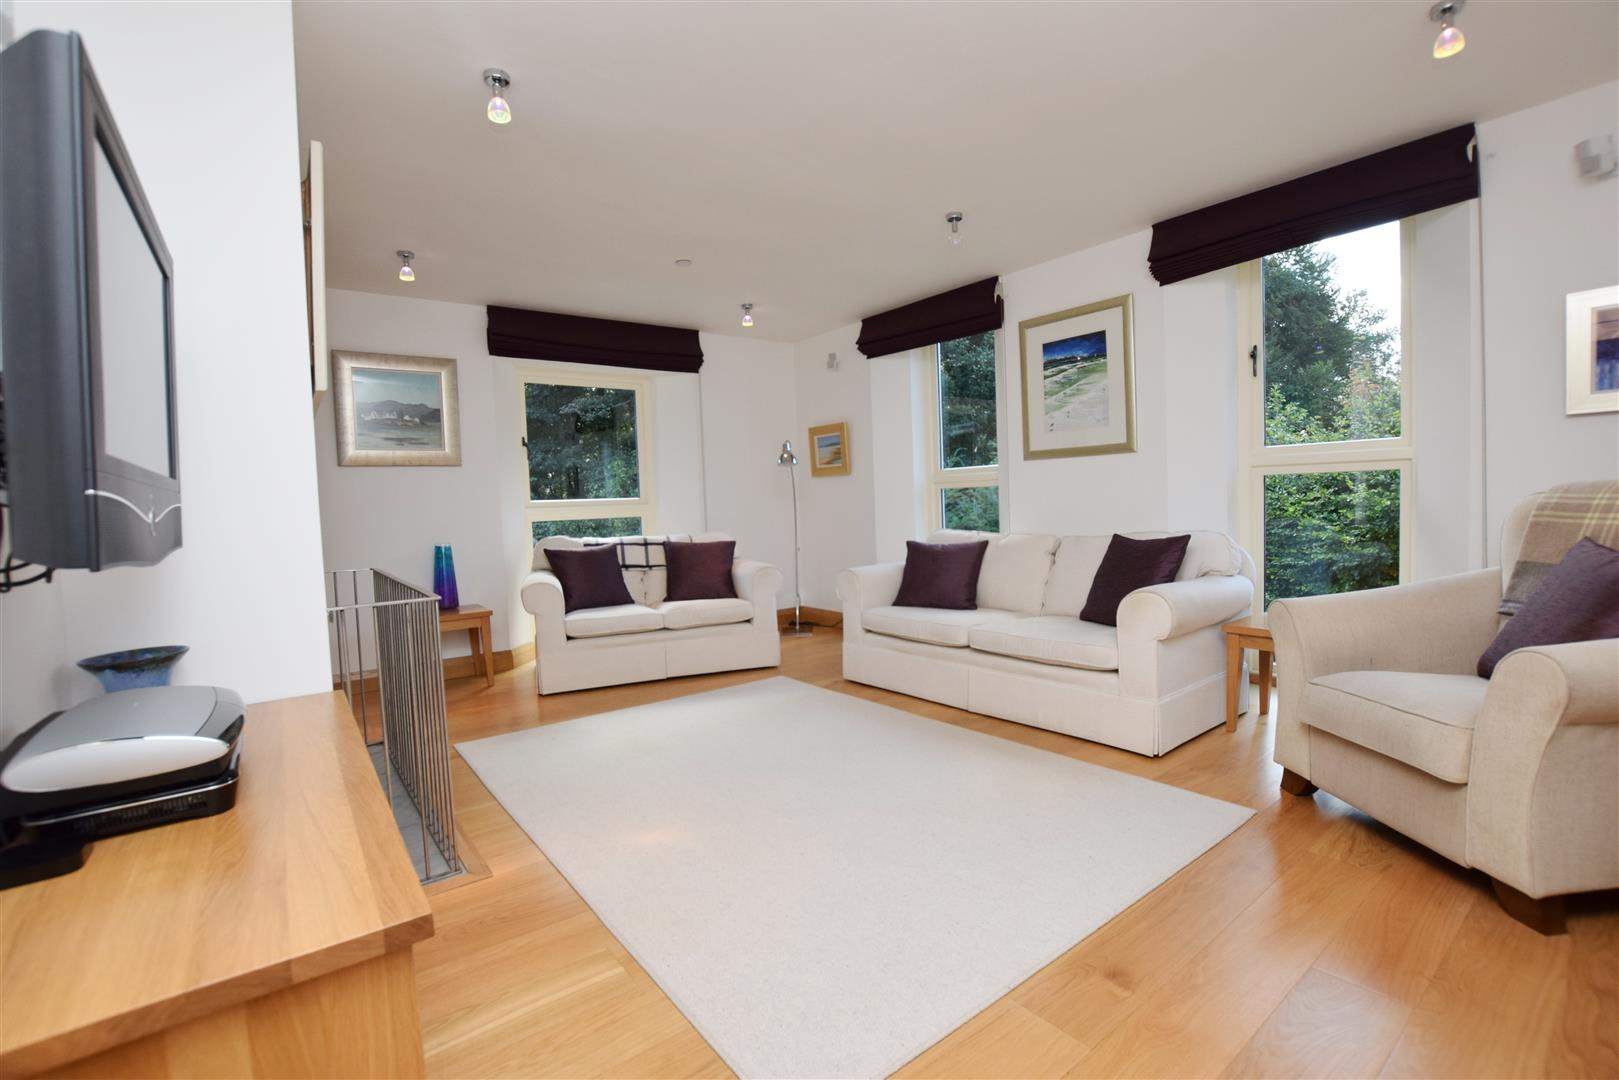 6, Croftcroy, Croftinloan, Pitlochry, PH16 5TG, UK